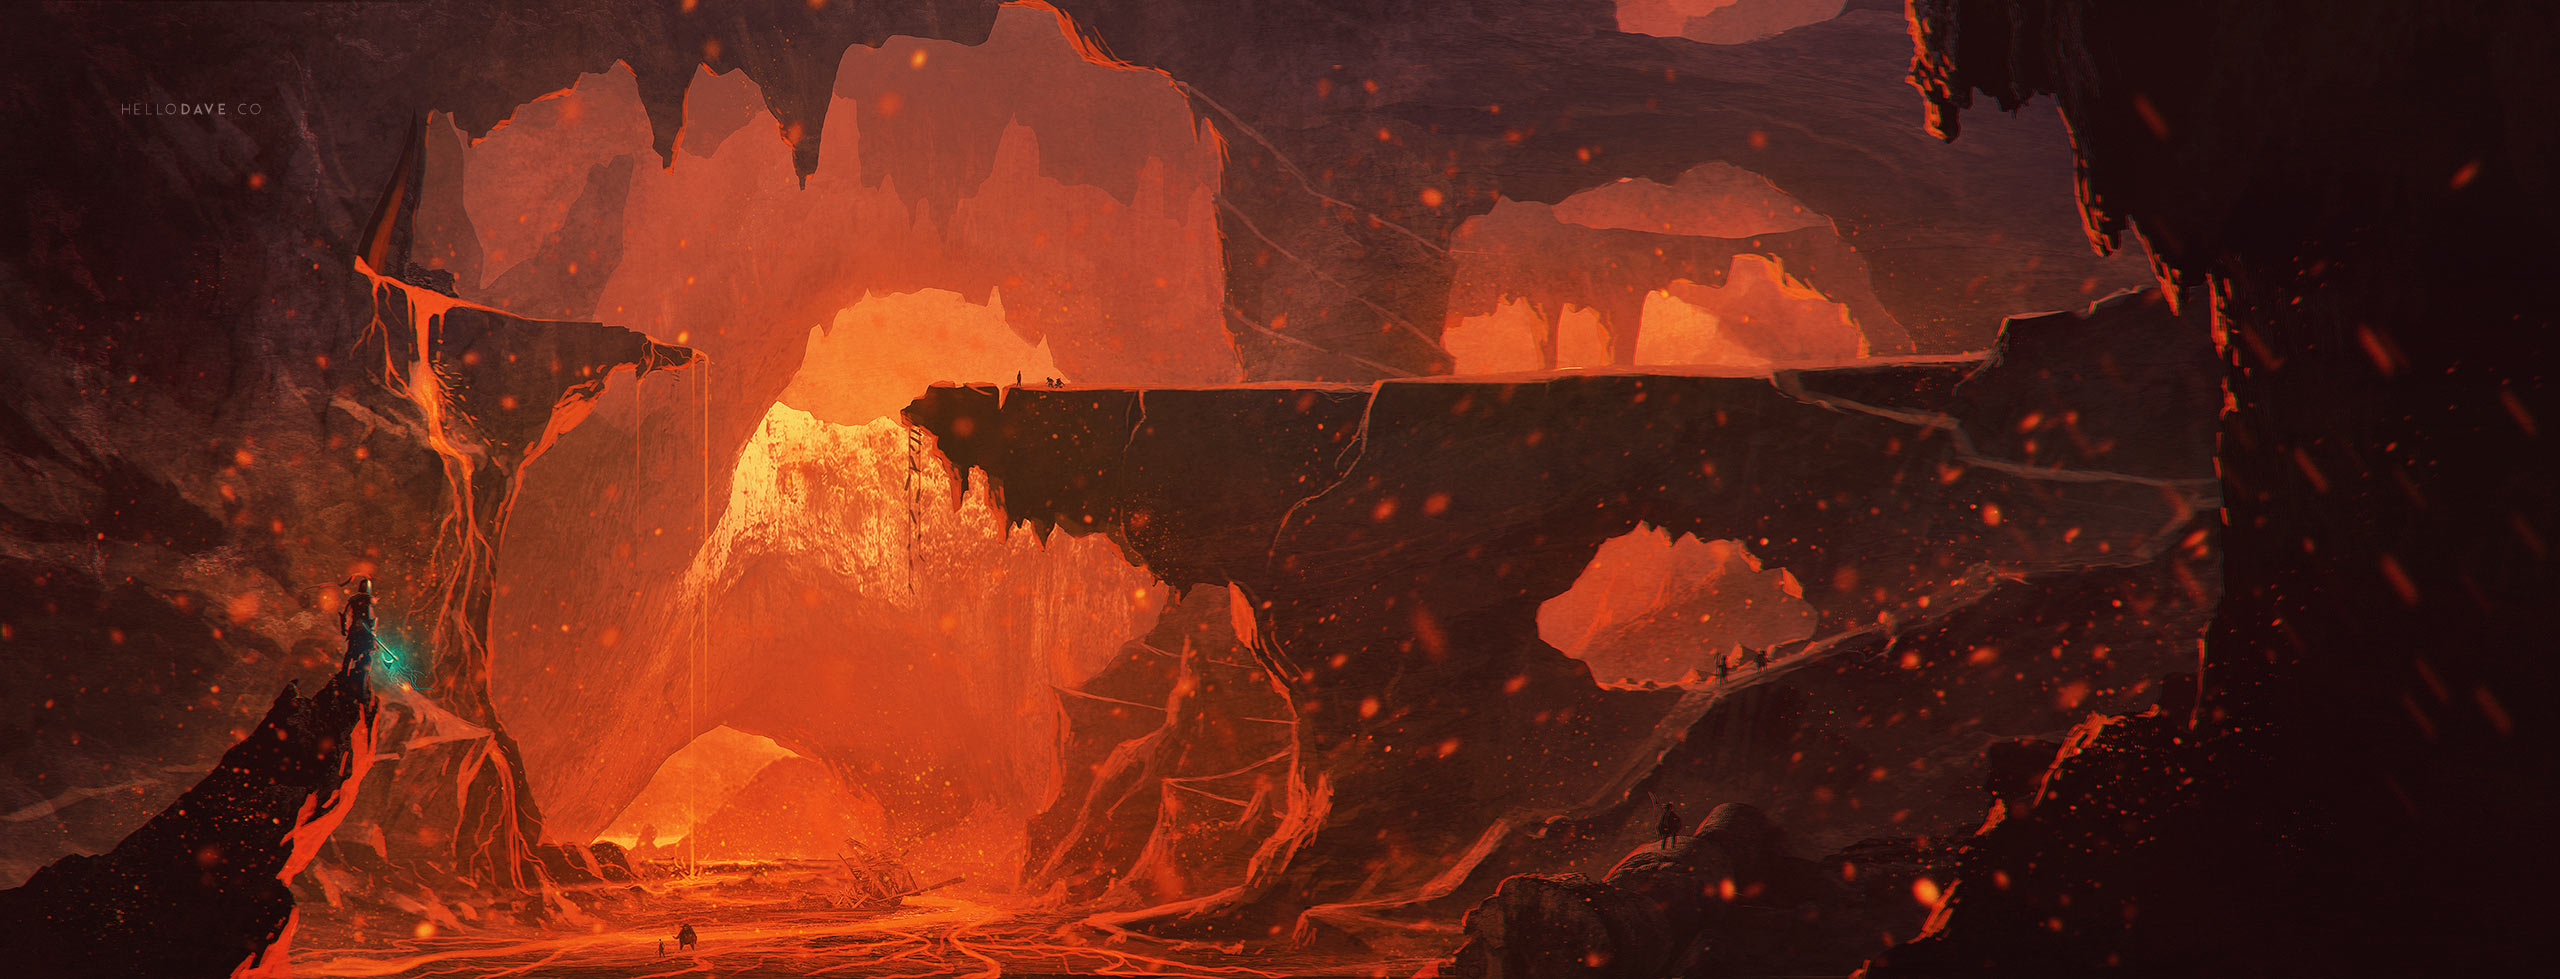 Cpts_Volcanic_land_test_02a